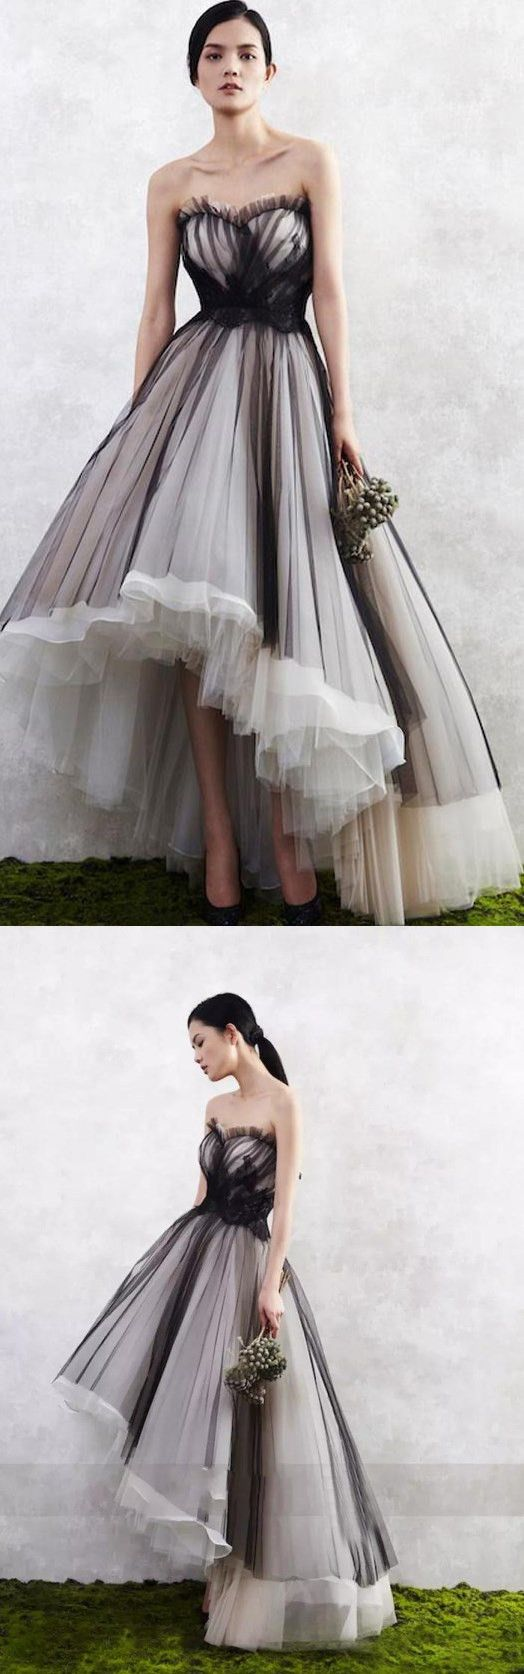 High low gown with lots of tulle. ~ETS #bridesmaids